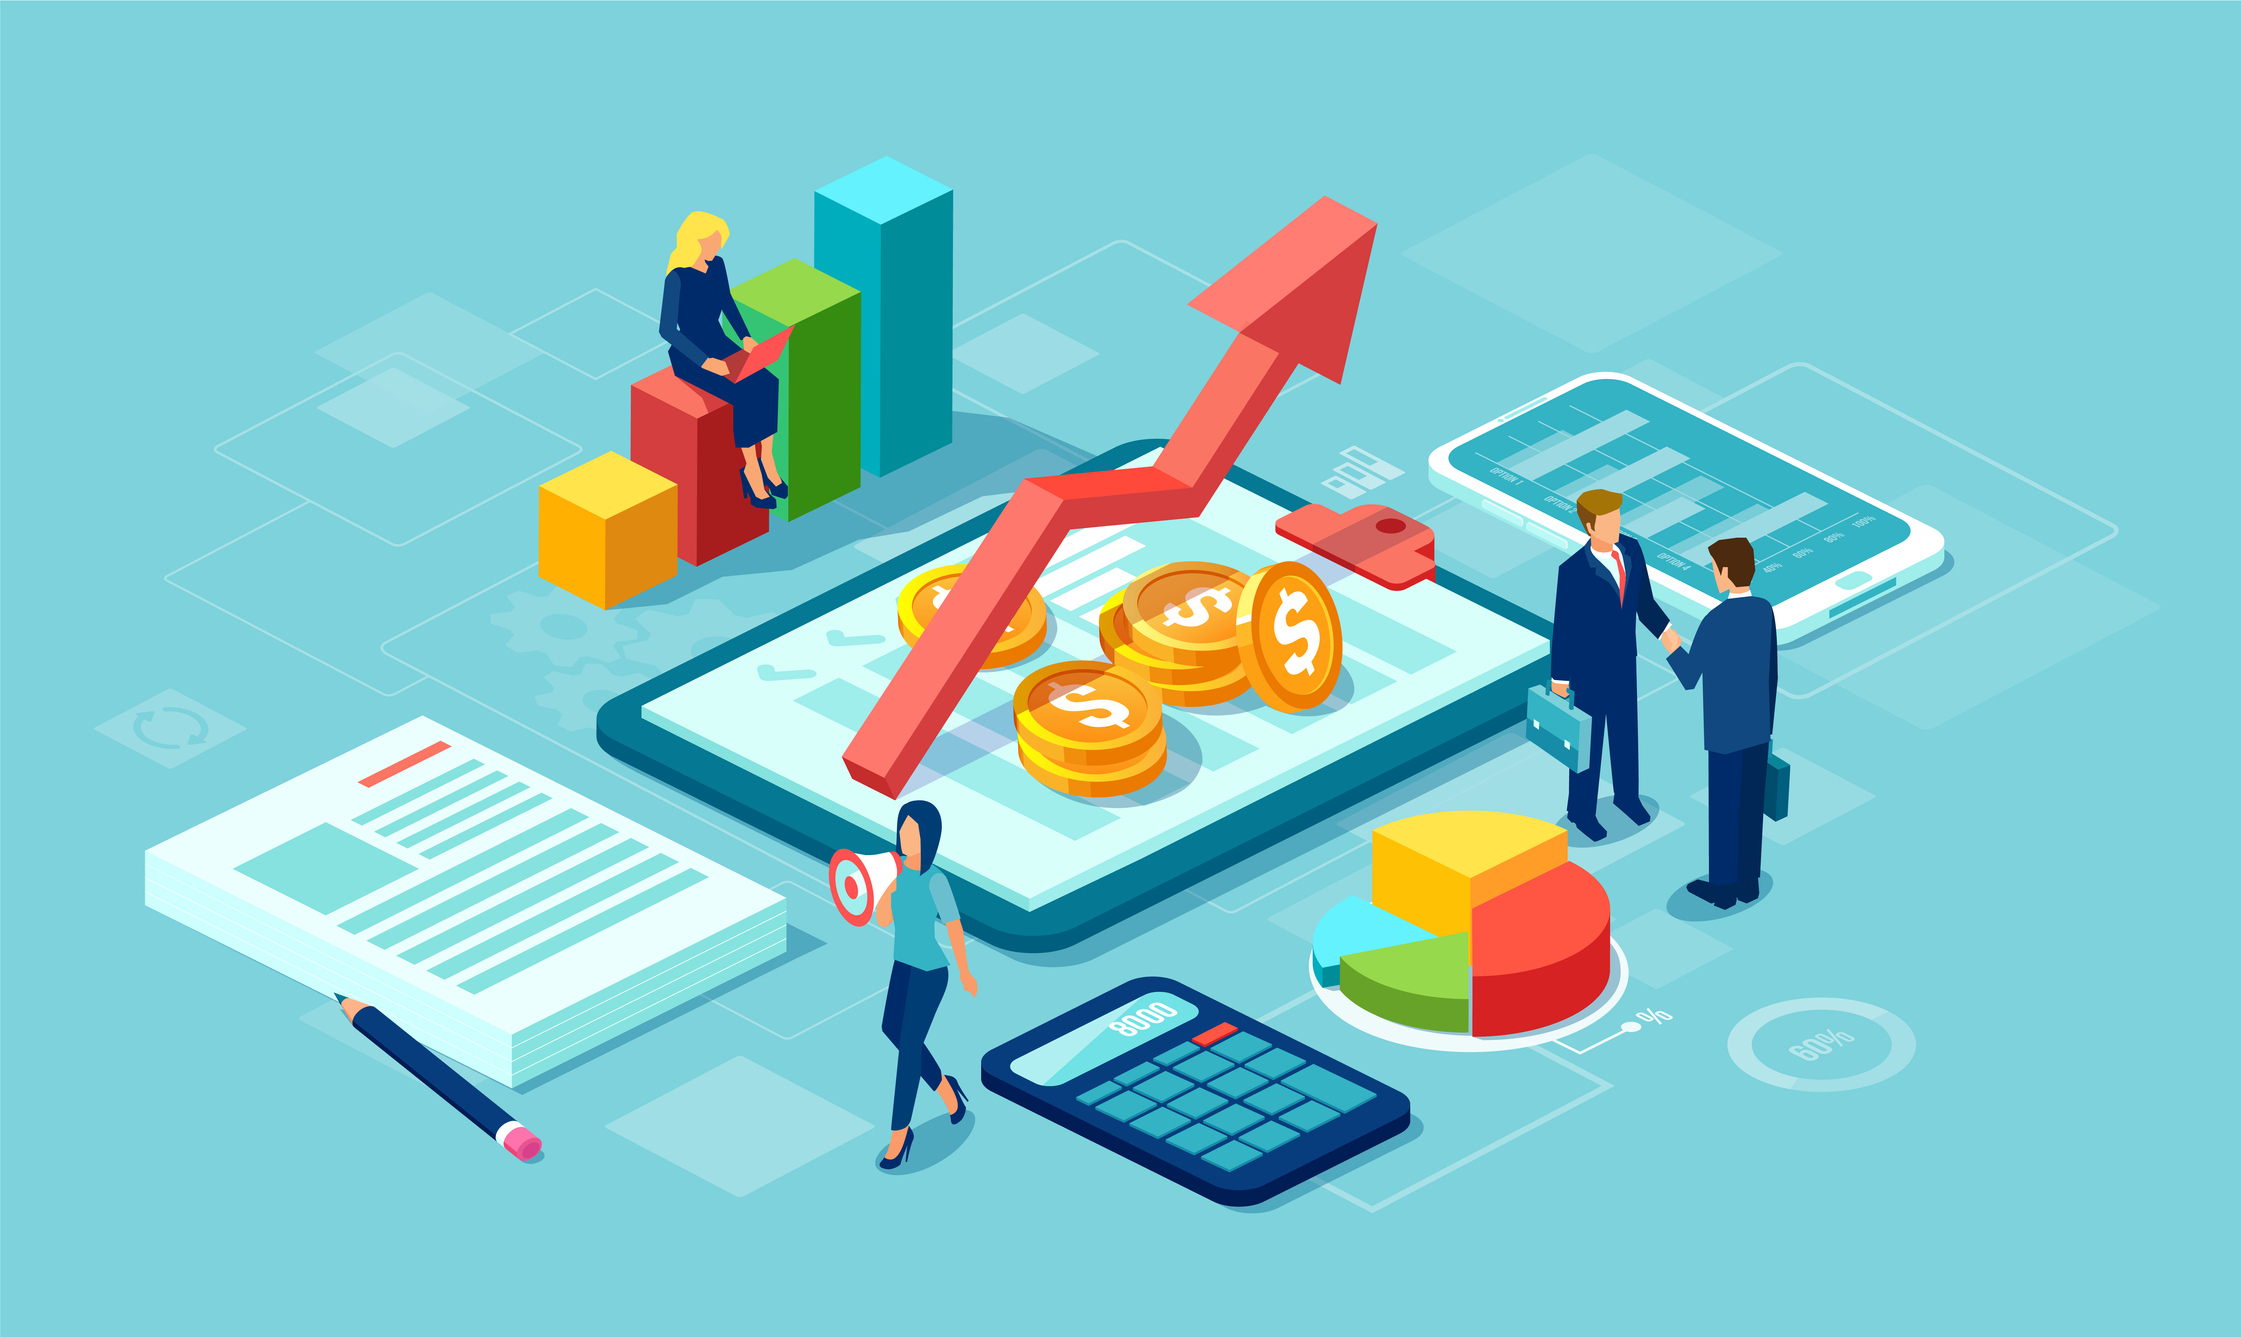 BusinessApplications_Coactive.jpg